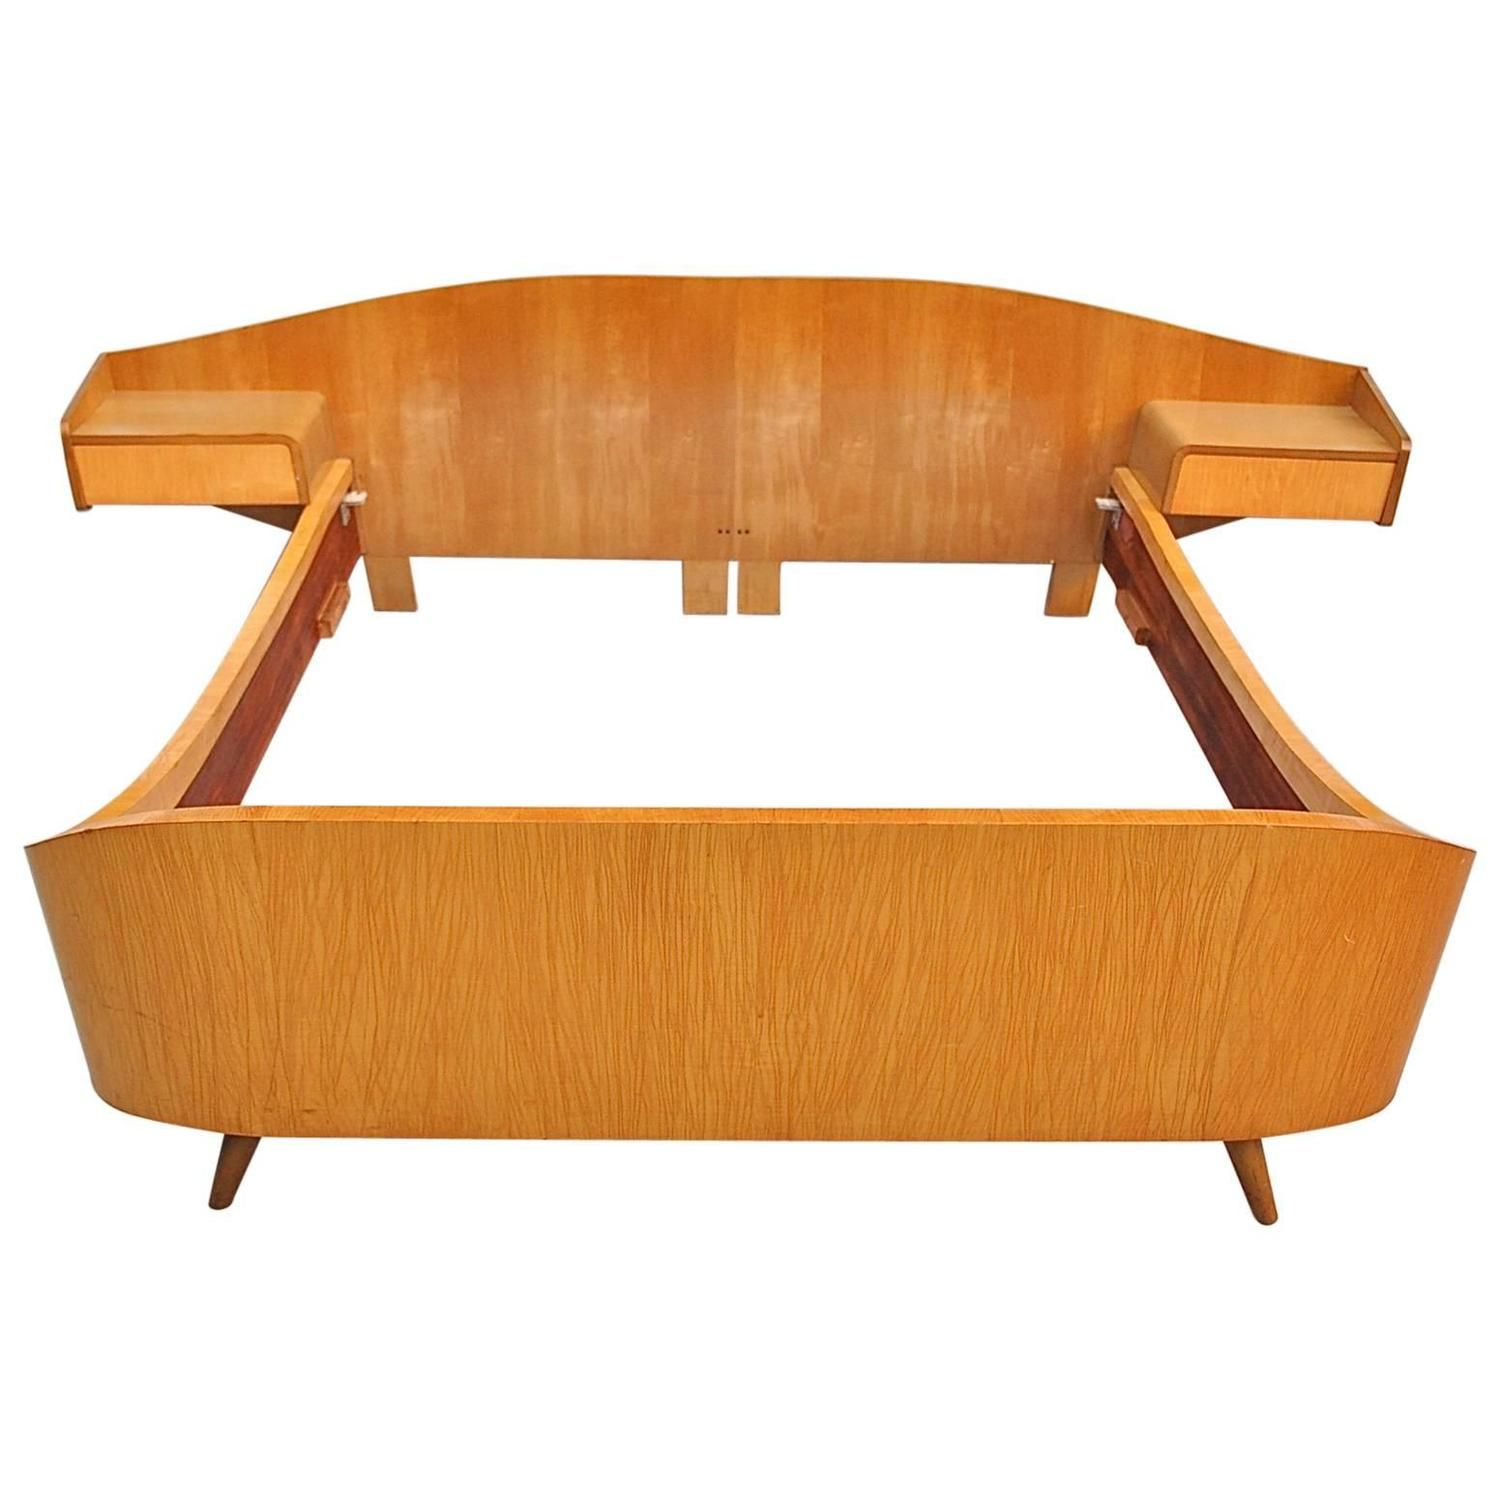 Best Mid Century Modern Double Bed With Attached Night Tables 400 x 300